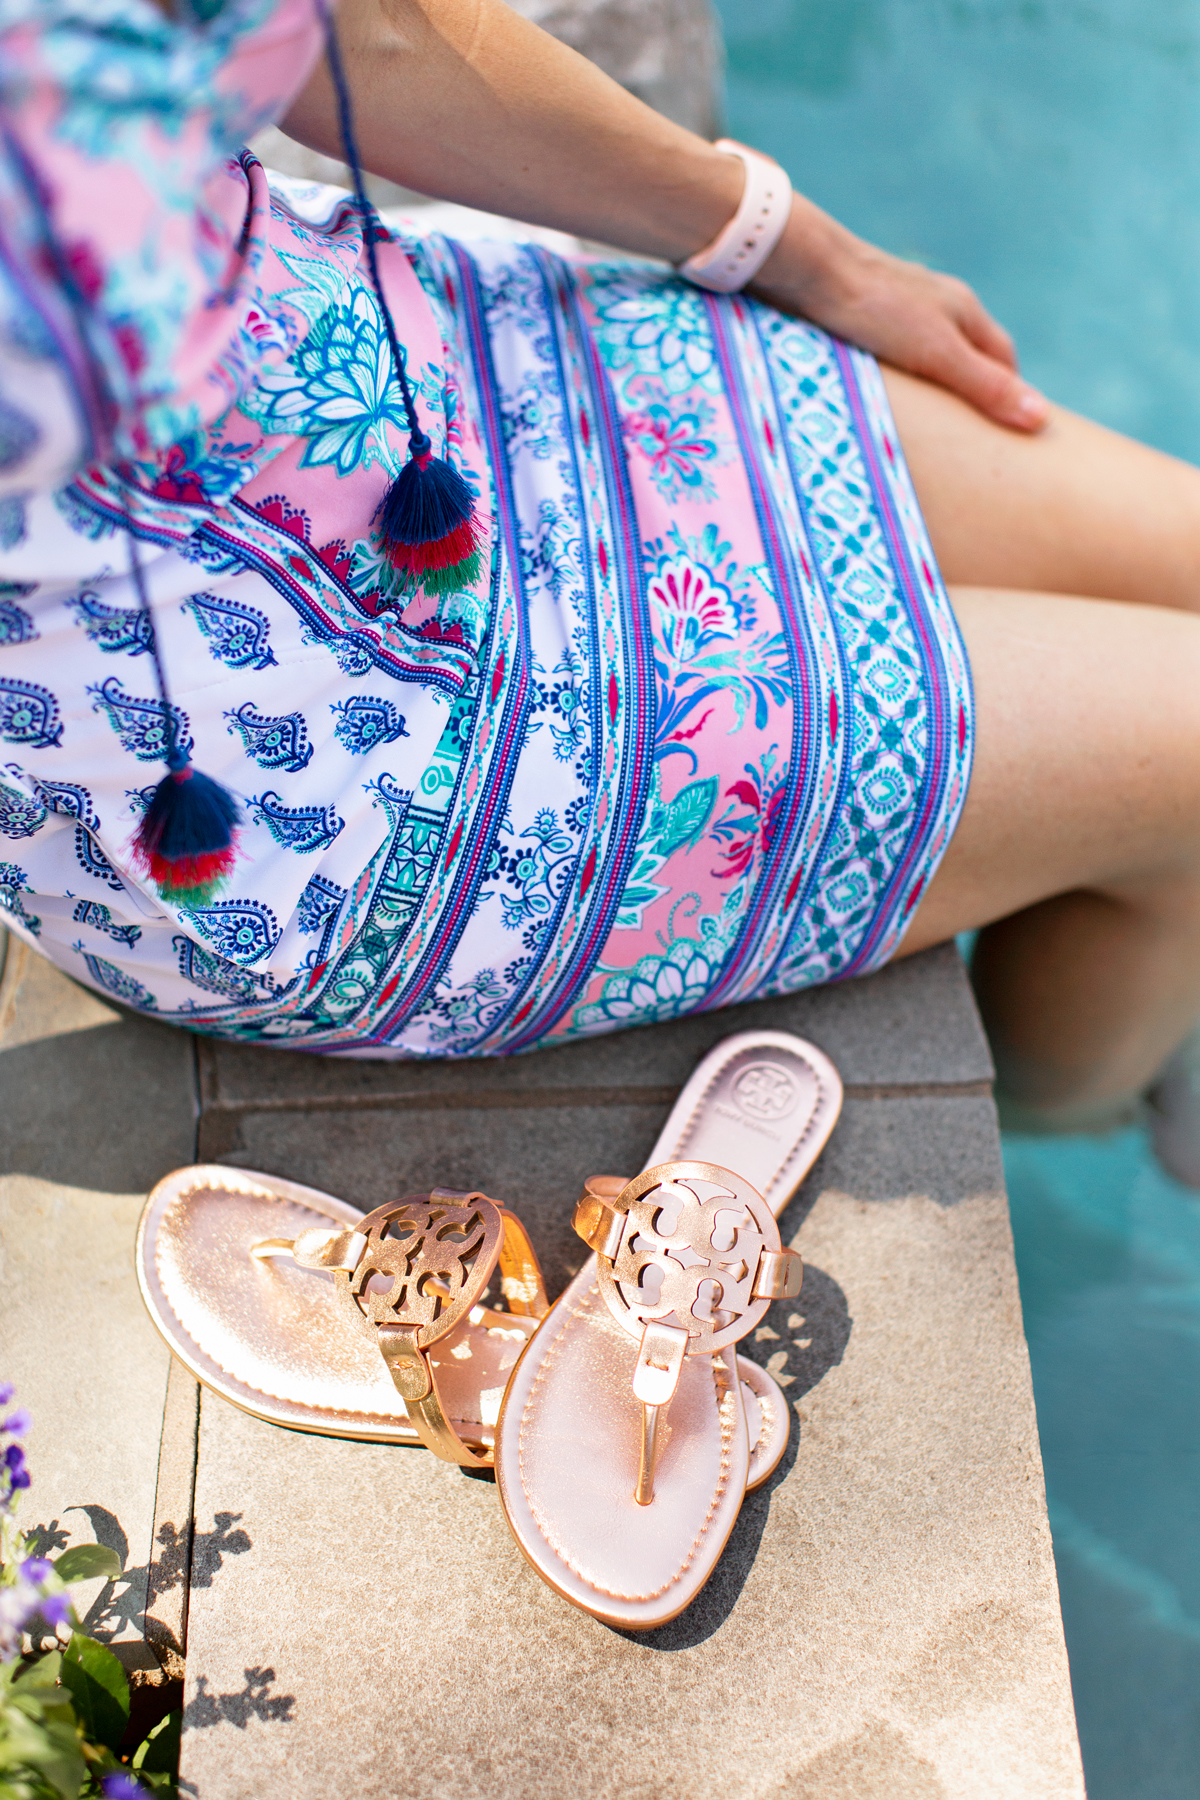 skirt of a woman's dress and tory burch rose gold miller sandals beside a pool